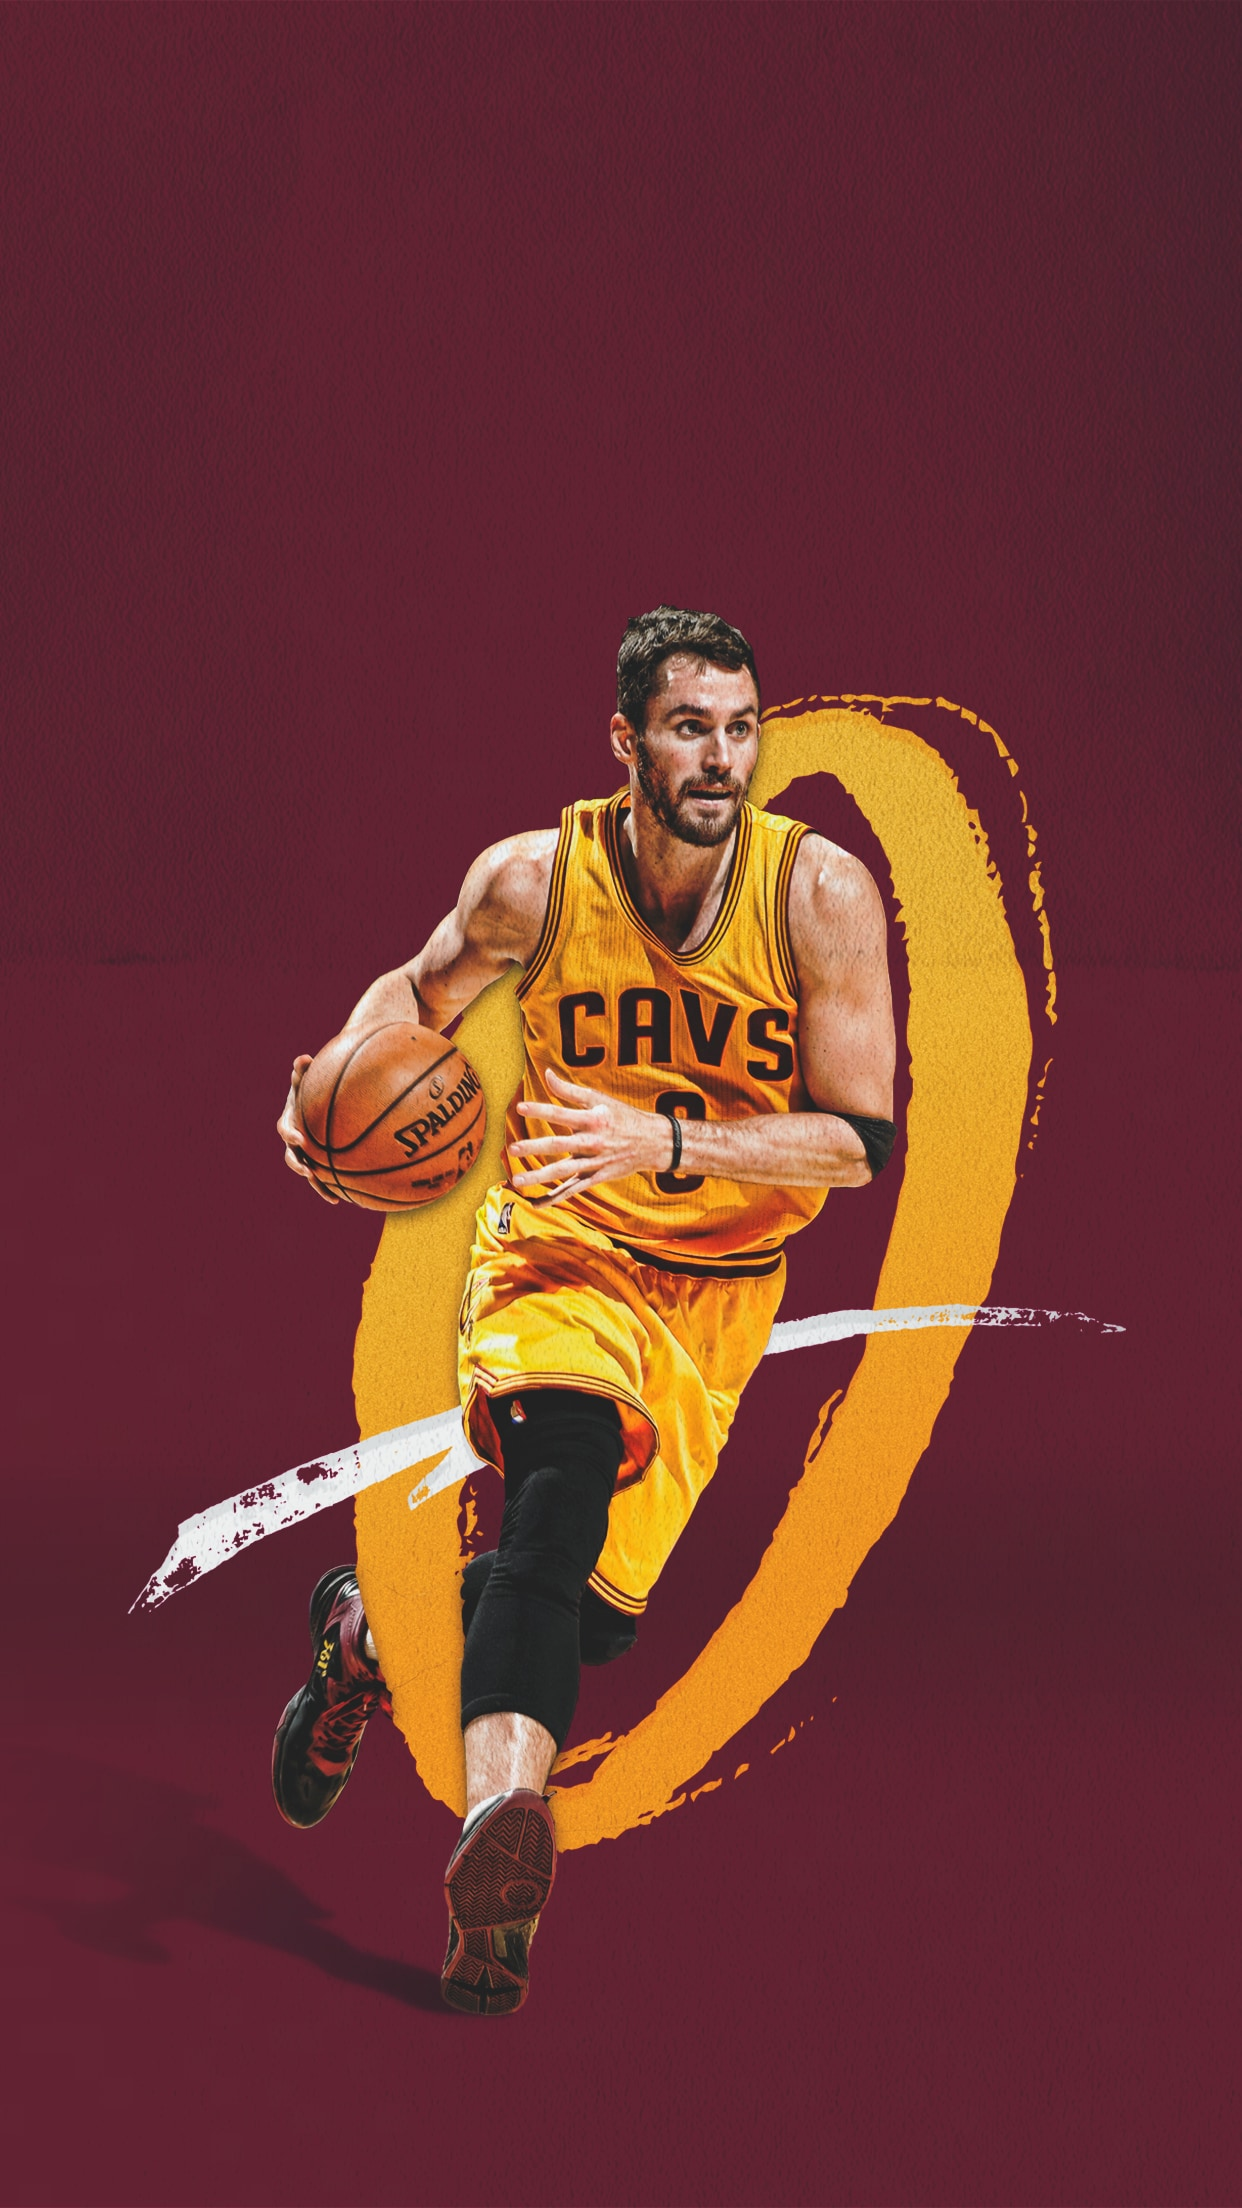 Kevin Love Iphone Wallpaper : Wallpapers cleveland cavaliers